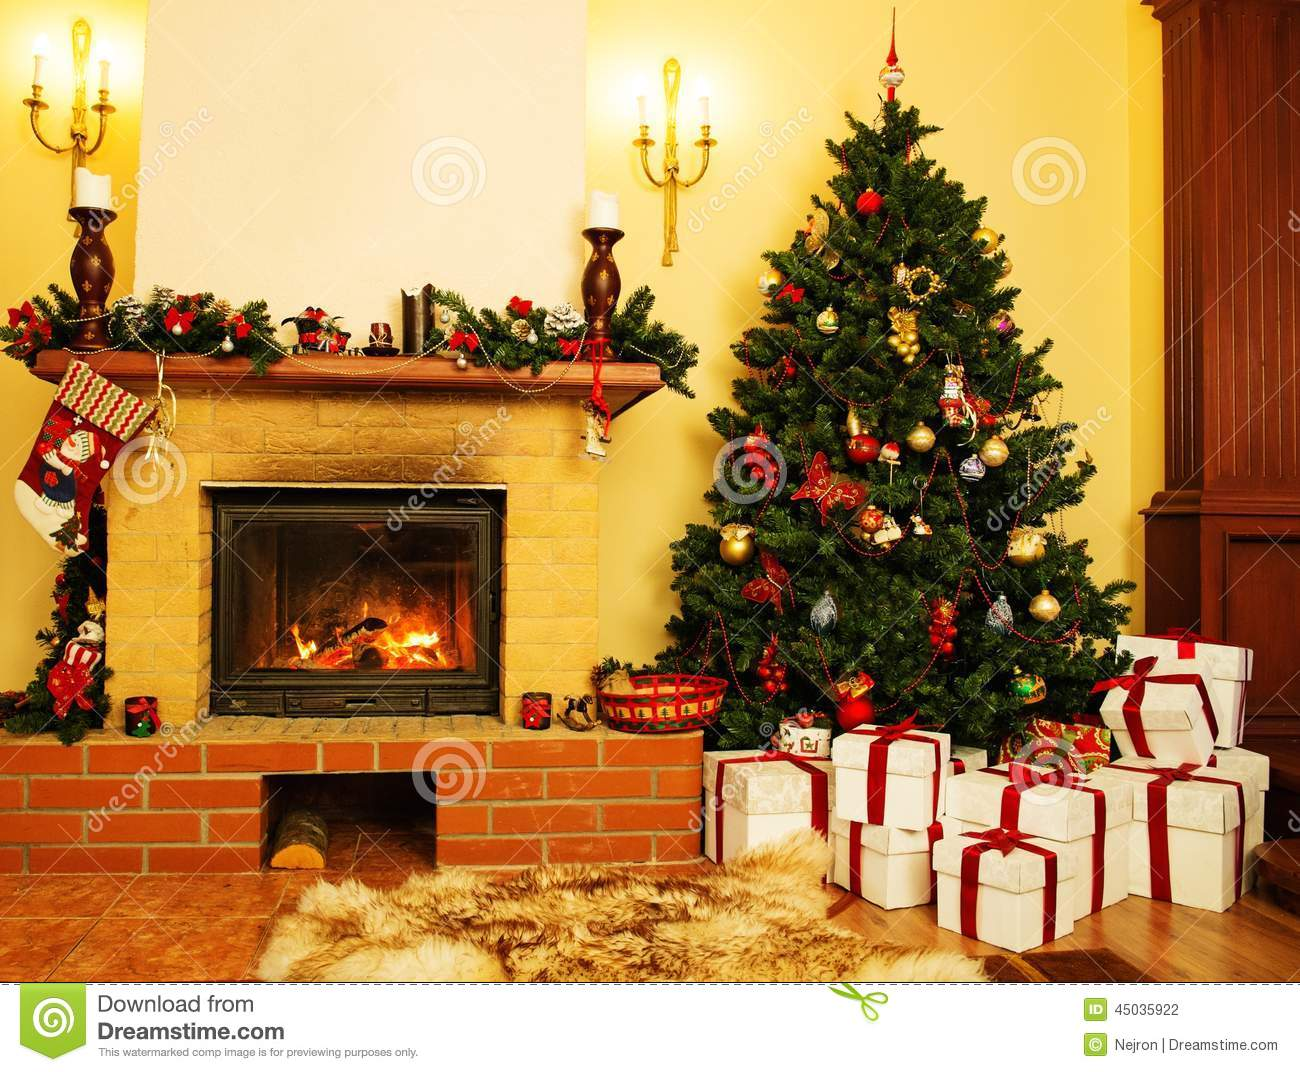 No l a d cor l 39 int rieur de maison photo stock image for Maison decore pour noel